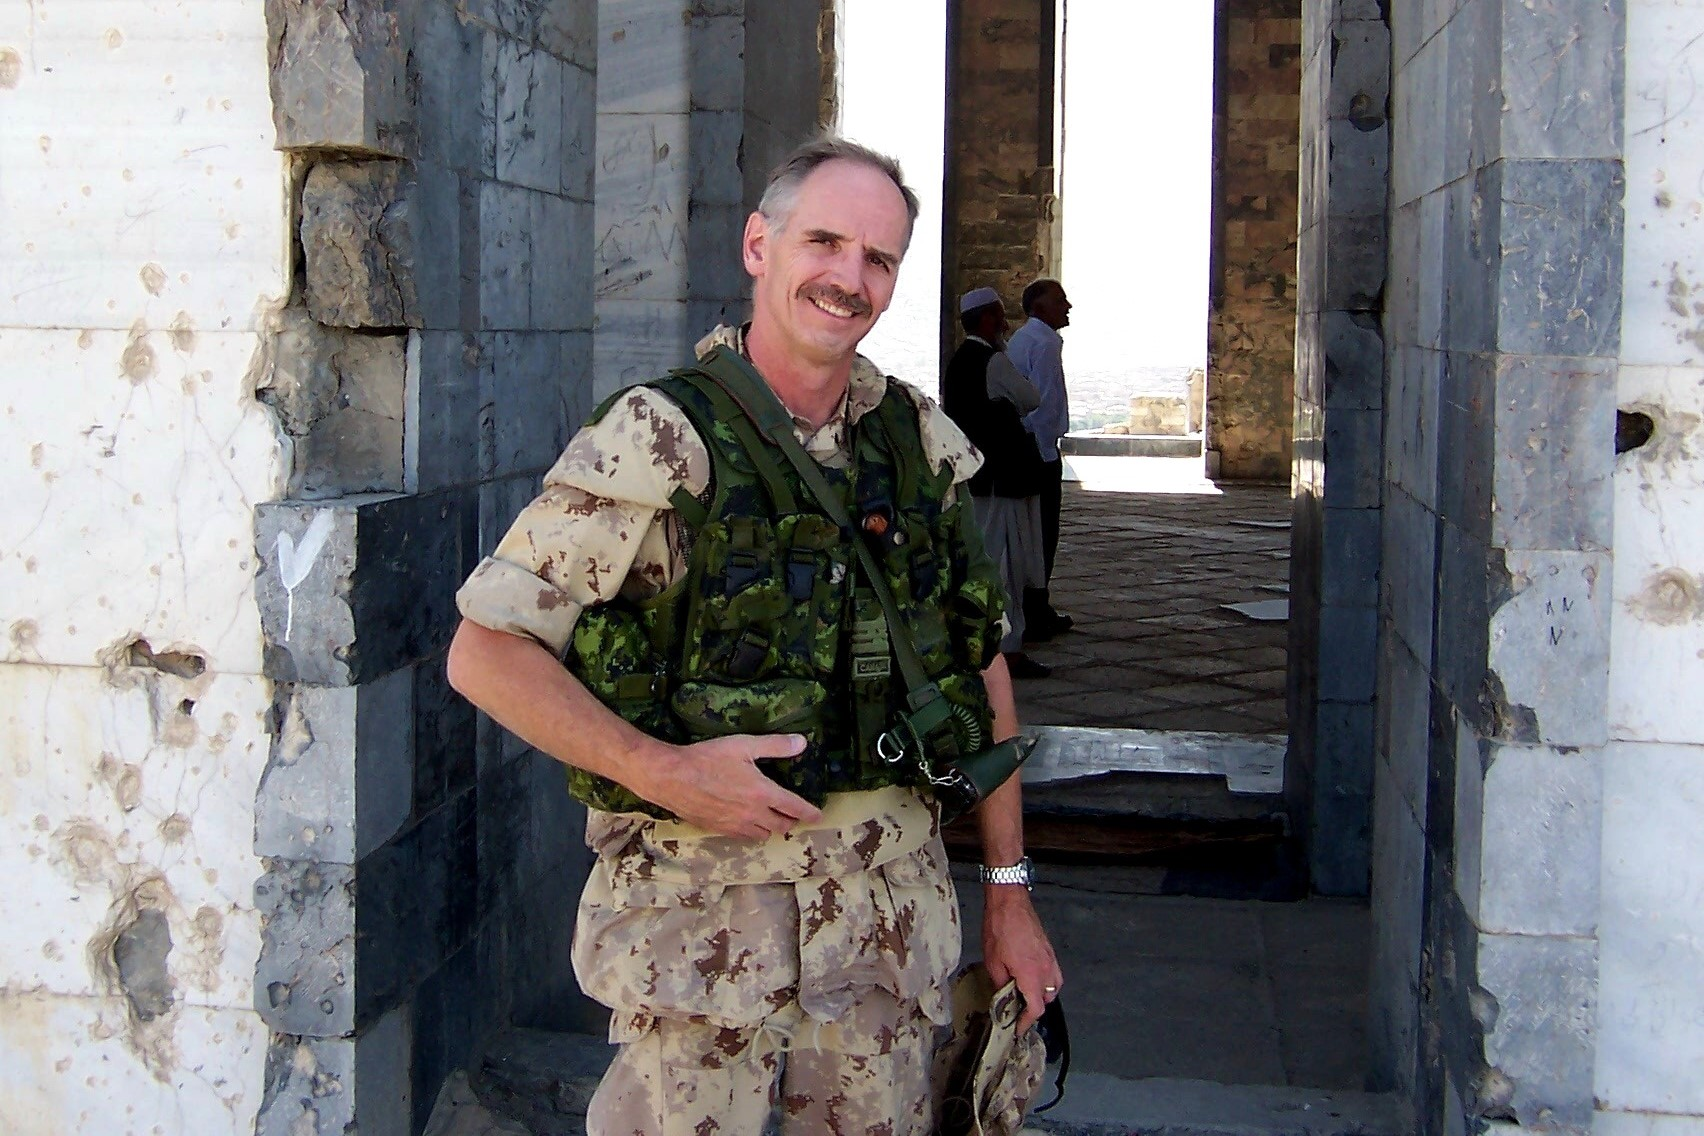 Harold A. Skaarup as the Deputy G2 and Chief of Intelligence Assessments on the staff of the Kabul Multinational Brigade (KMNB), as part of the International Security Assistance Force (ISAF), in Kabul, Afghanistan